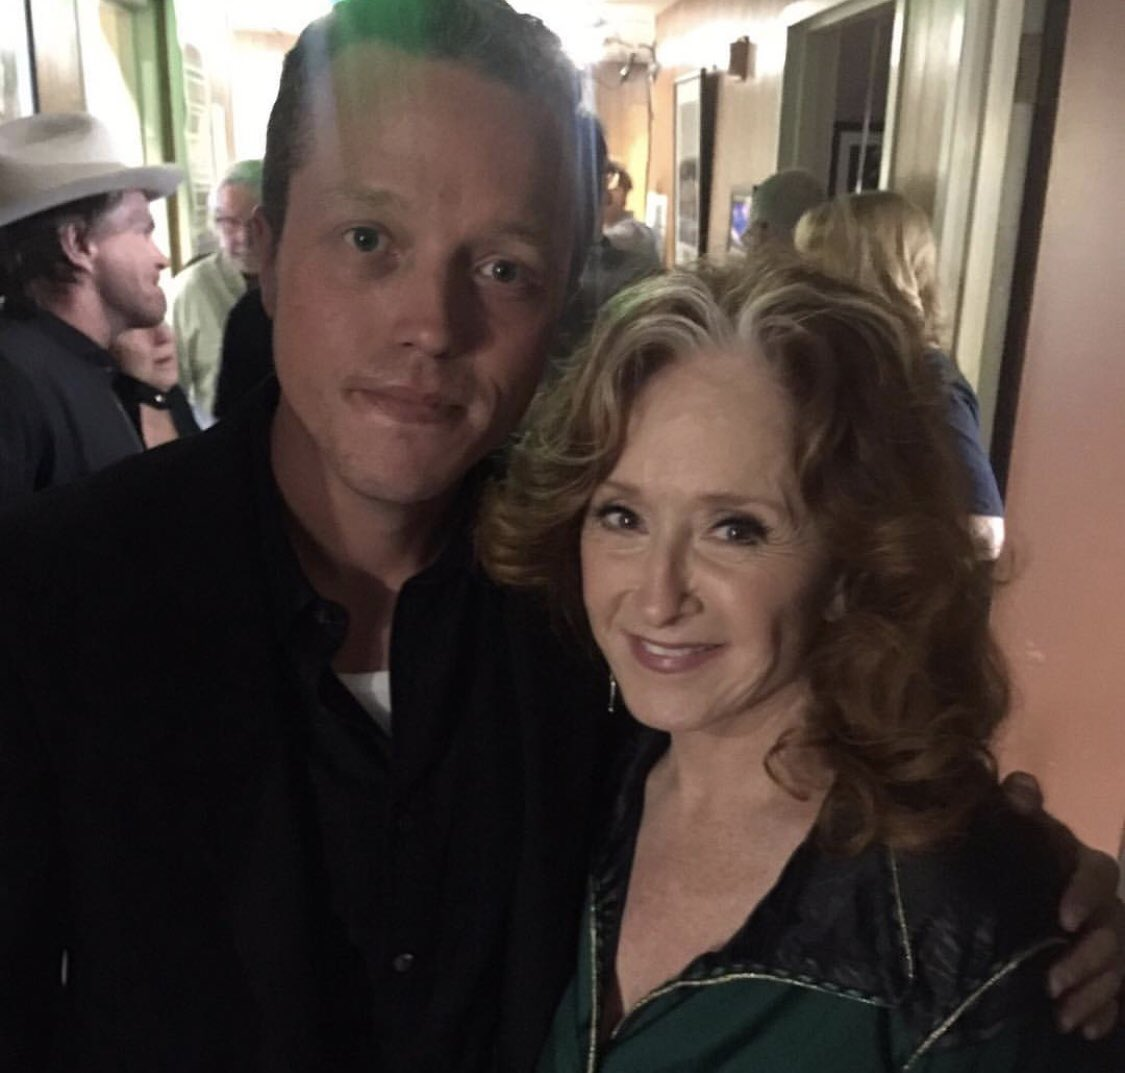 Happy birthday to the kind and legendary Bonnie Raitt. Seeing her play made me want to learn slide guitar.